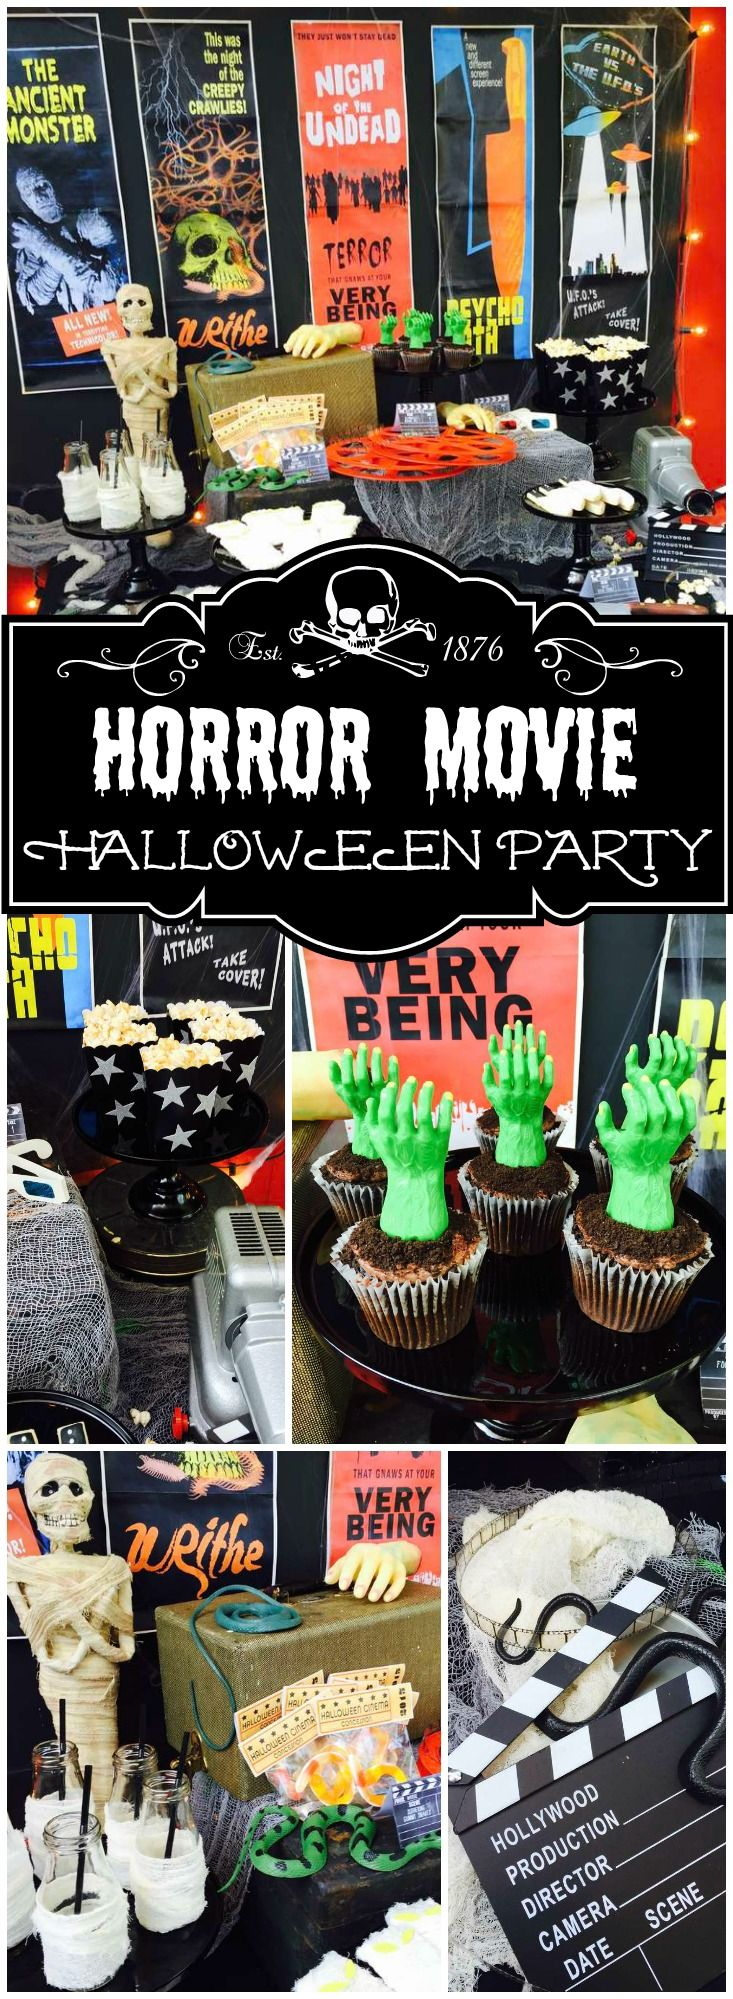 Gmail themes halloween - 25 Best Ideas About Halloween Party Themes On Pinterest Halloween Dance Spooky Halloween Decorations And Halloween House Decorations